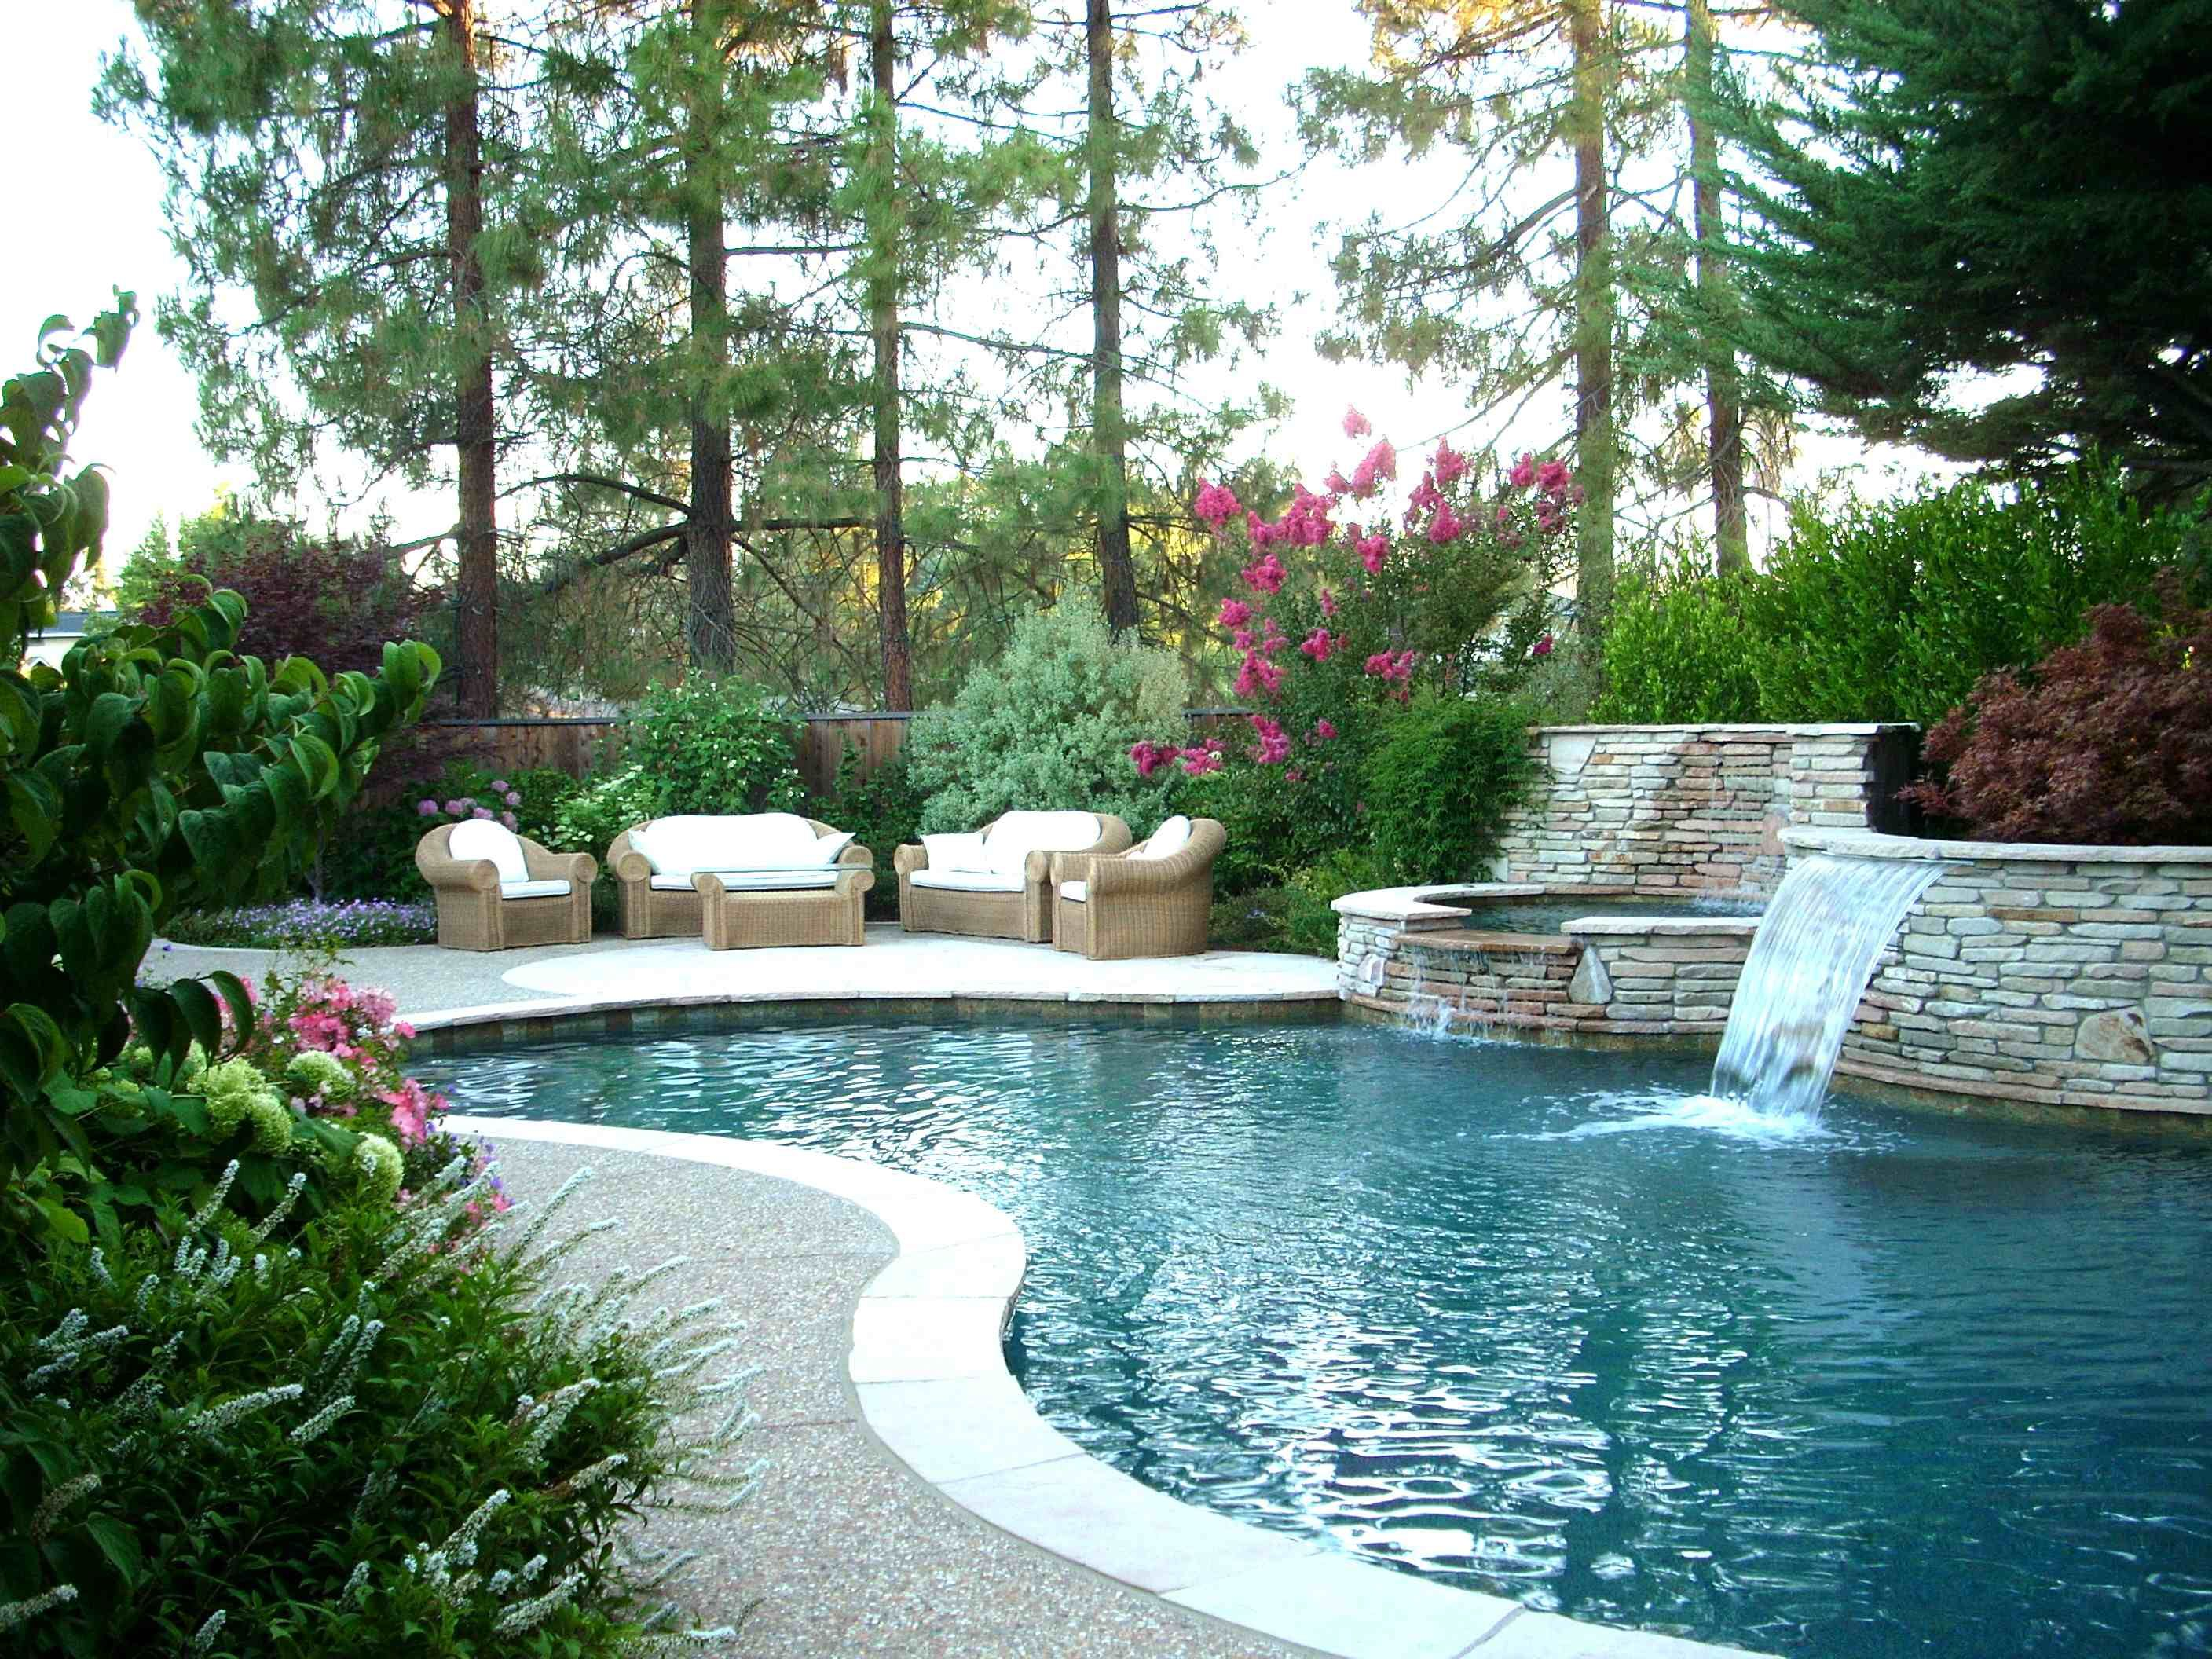 Landscaped pool pictures landscape design ideas for for Garden landscaping ideas